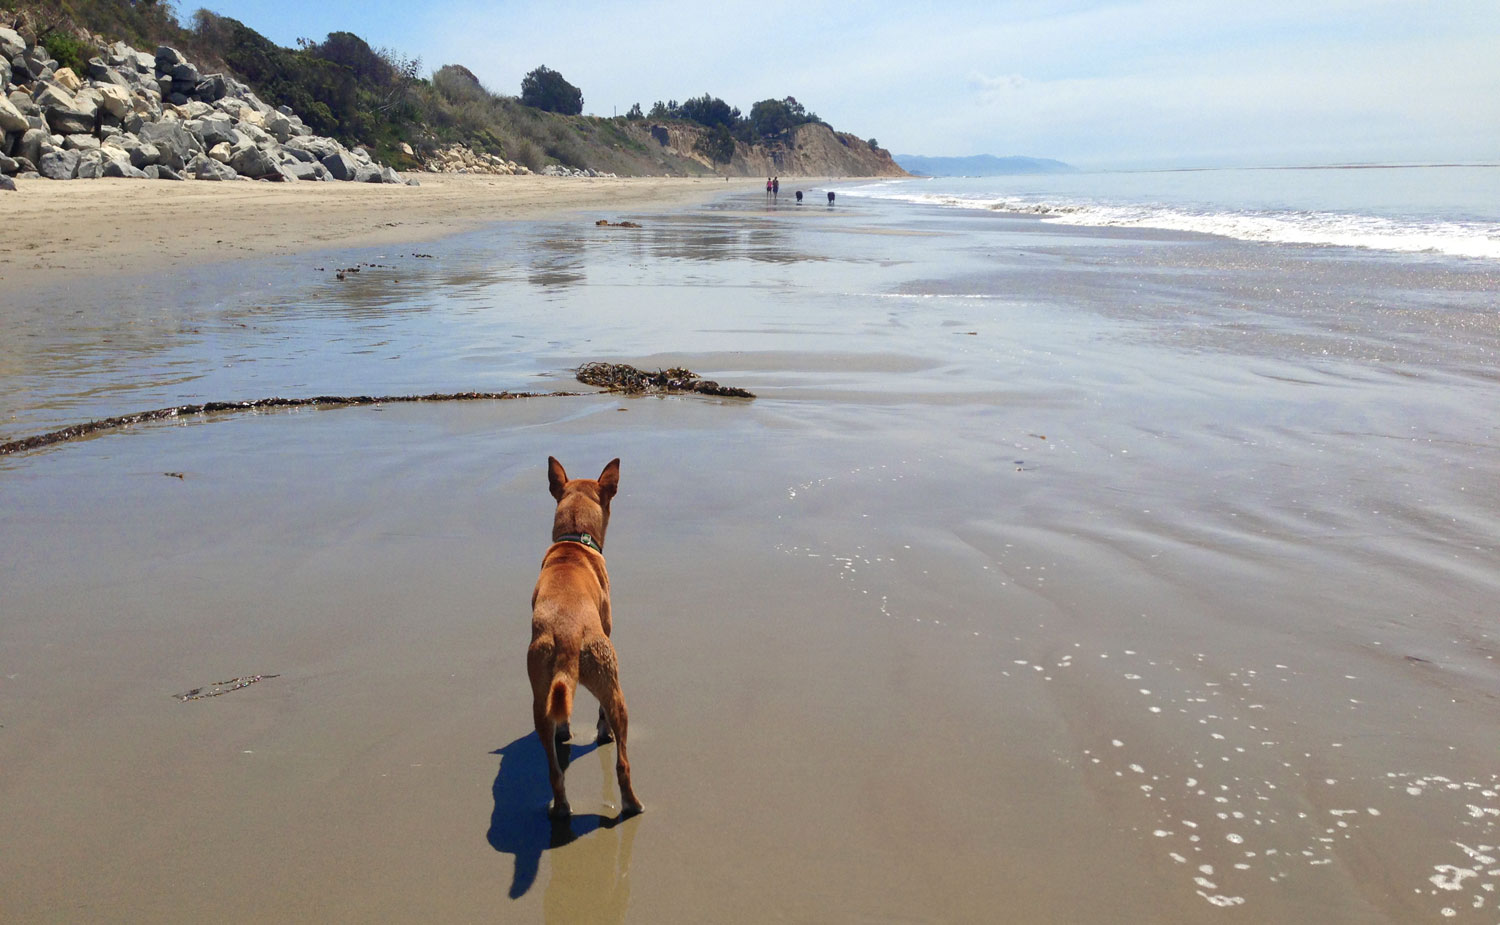 Zoe 'n Me {a dog blog} Caution ahead | Jordan benShea | Santa Barbara, California